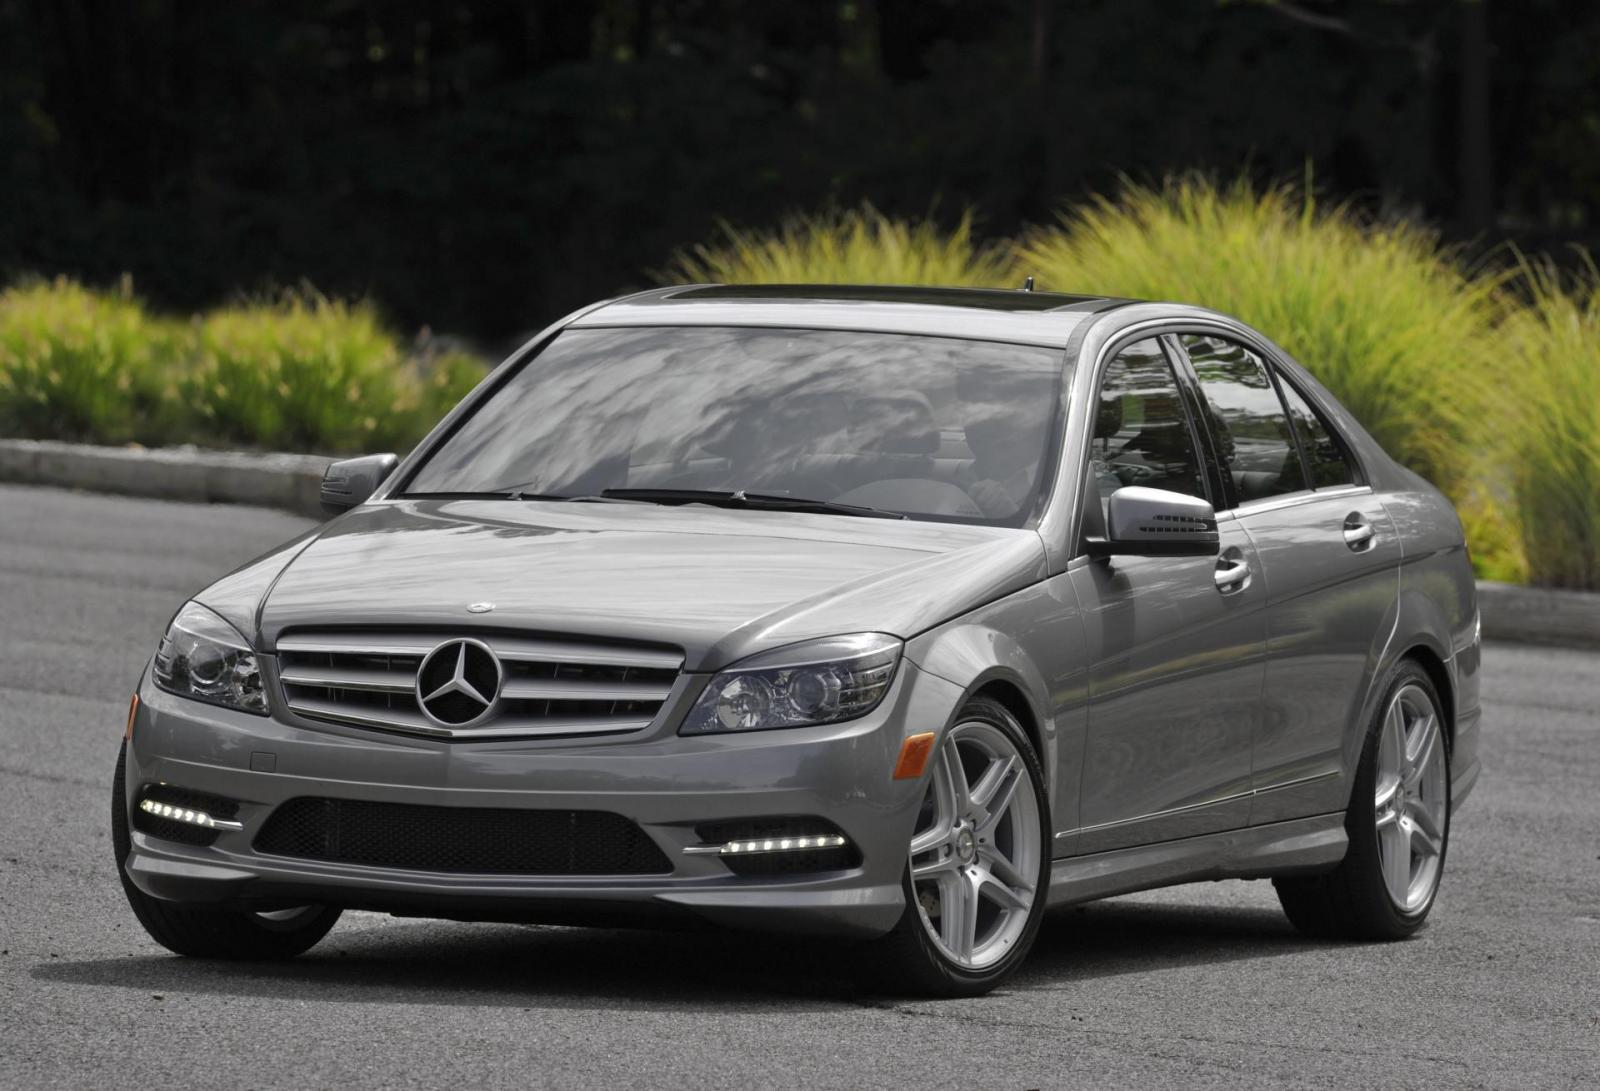 2011 mercedes benz c class information and photos